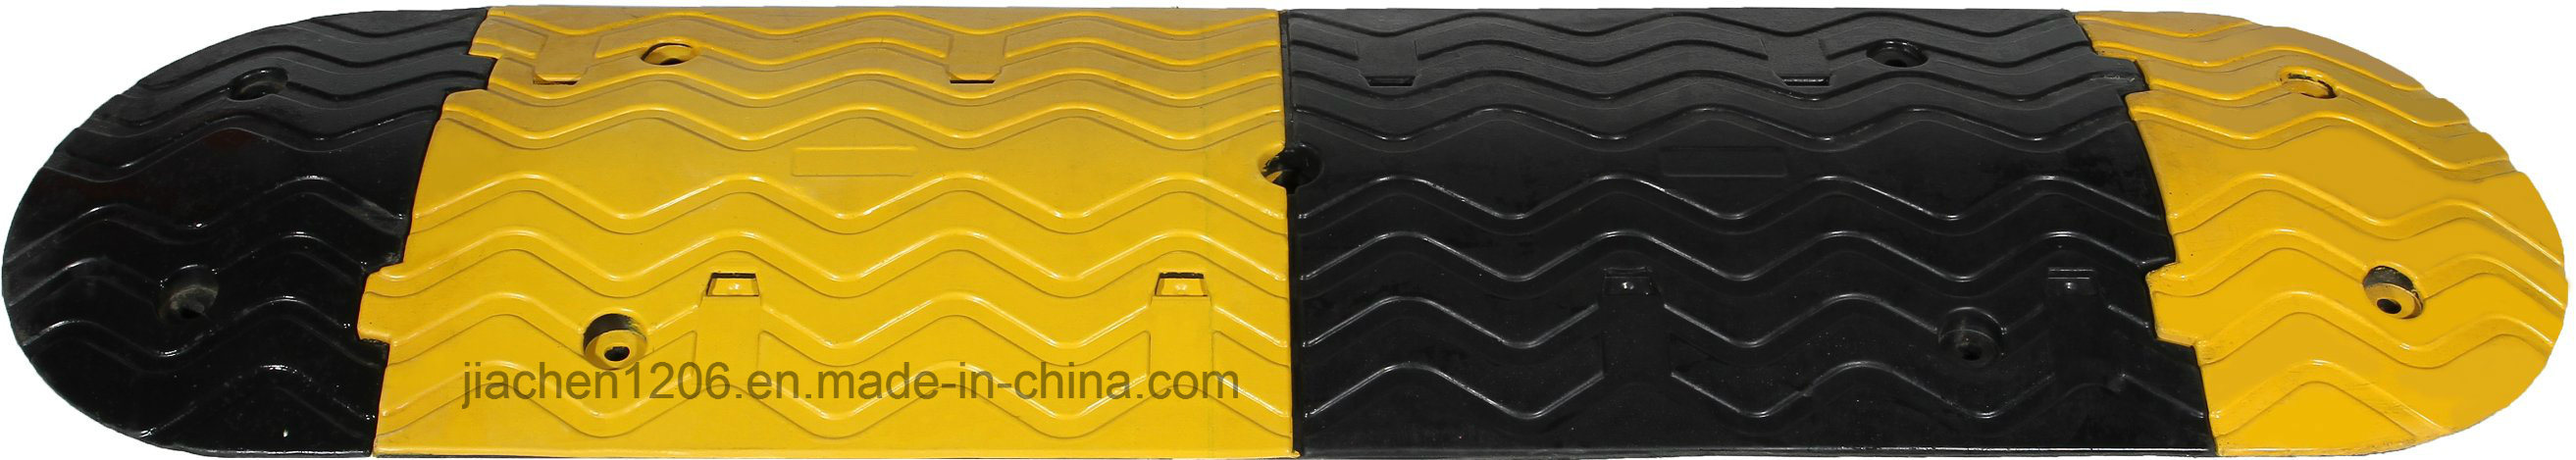 Superior Quality Druable Material Durable Rubber Road Speed Hump